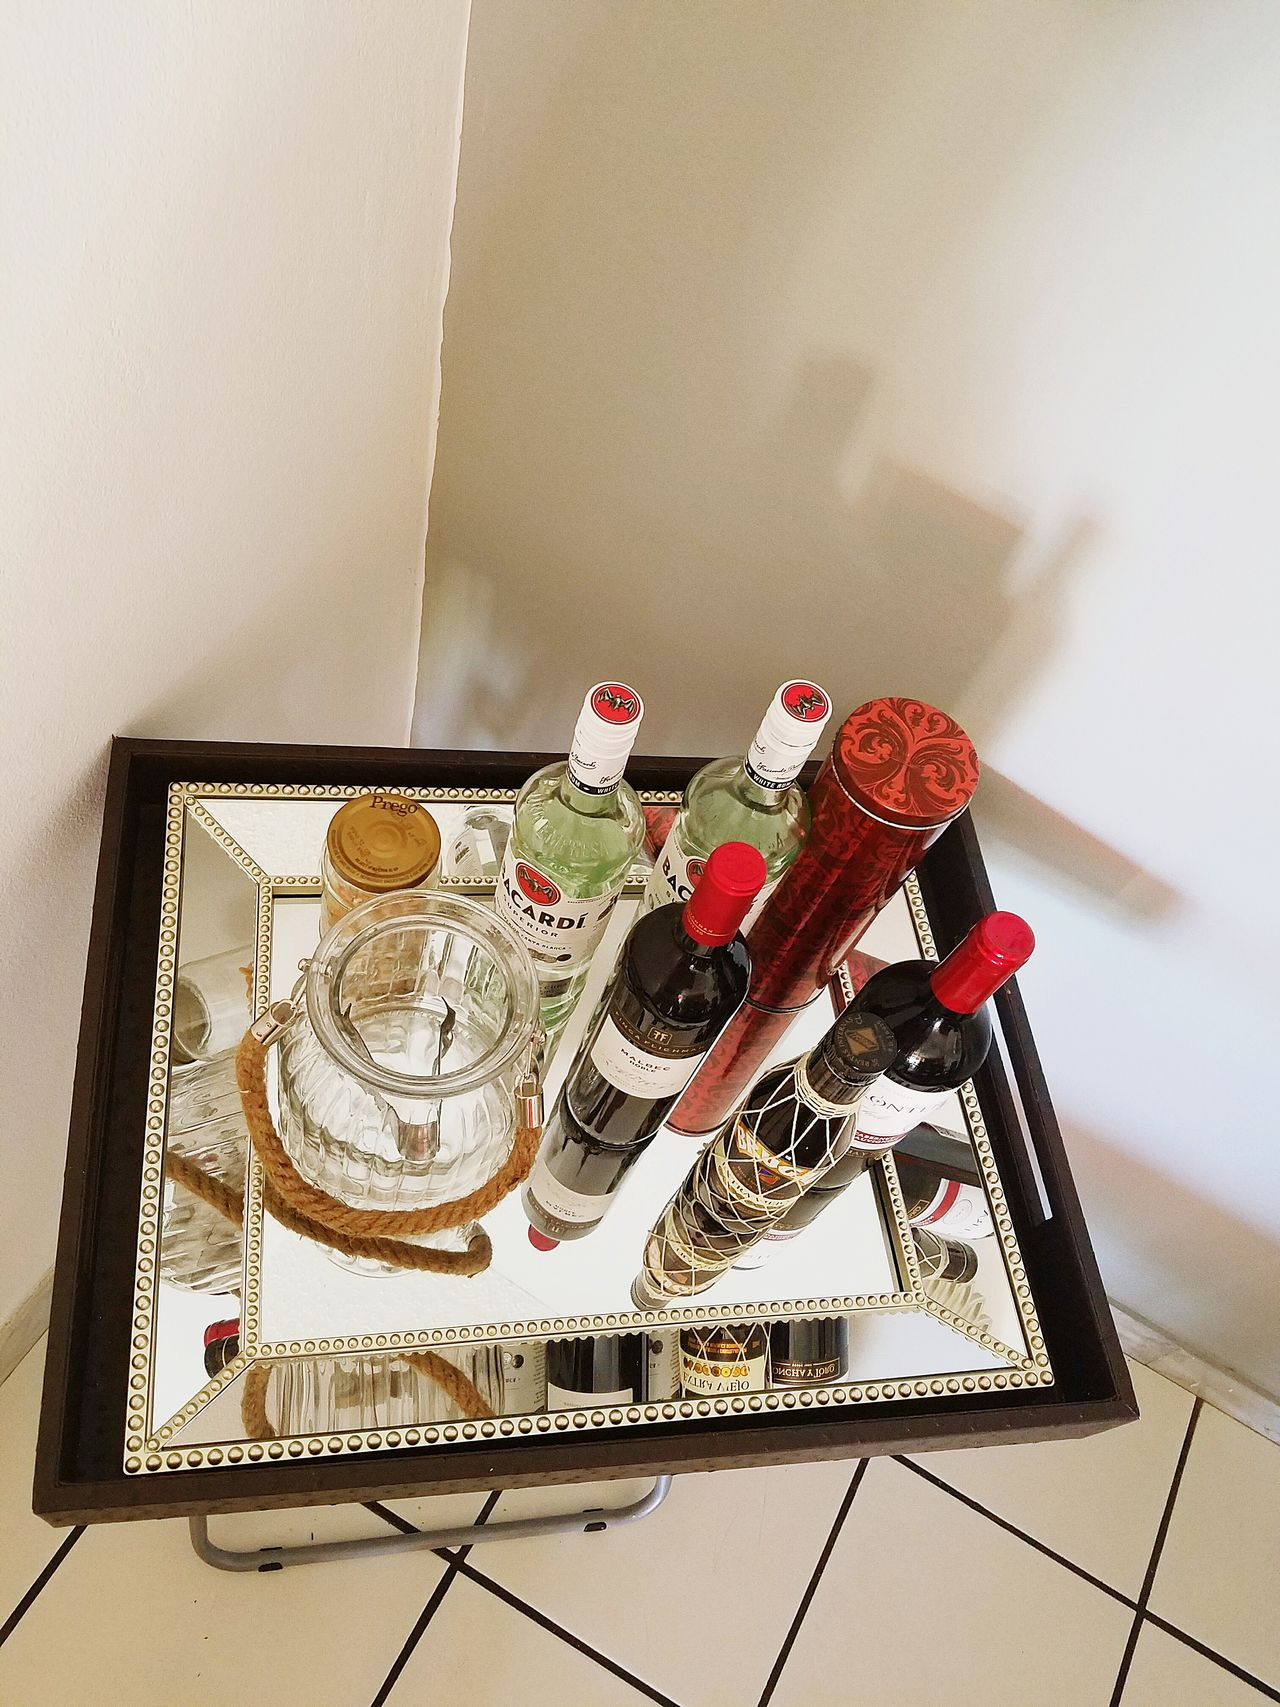 Open Edit Lieblingsteil Perspective Light And Shadow Decoration Details Low Angle View Popular Photo Bottles Of Wine Pattern, Texture, Shape And Form Bar Fine Art Photography Still Life Reflections Lines And Angles Mirrored Reflection